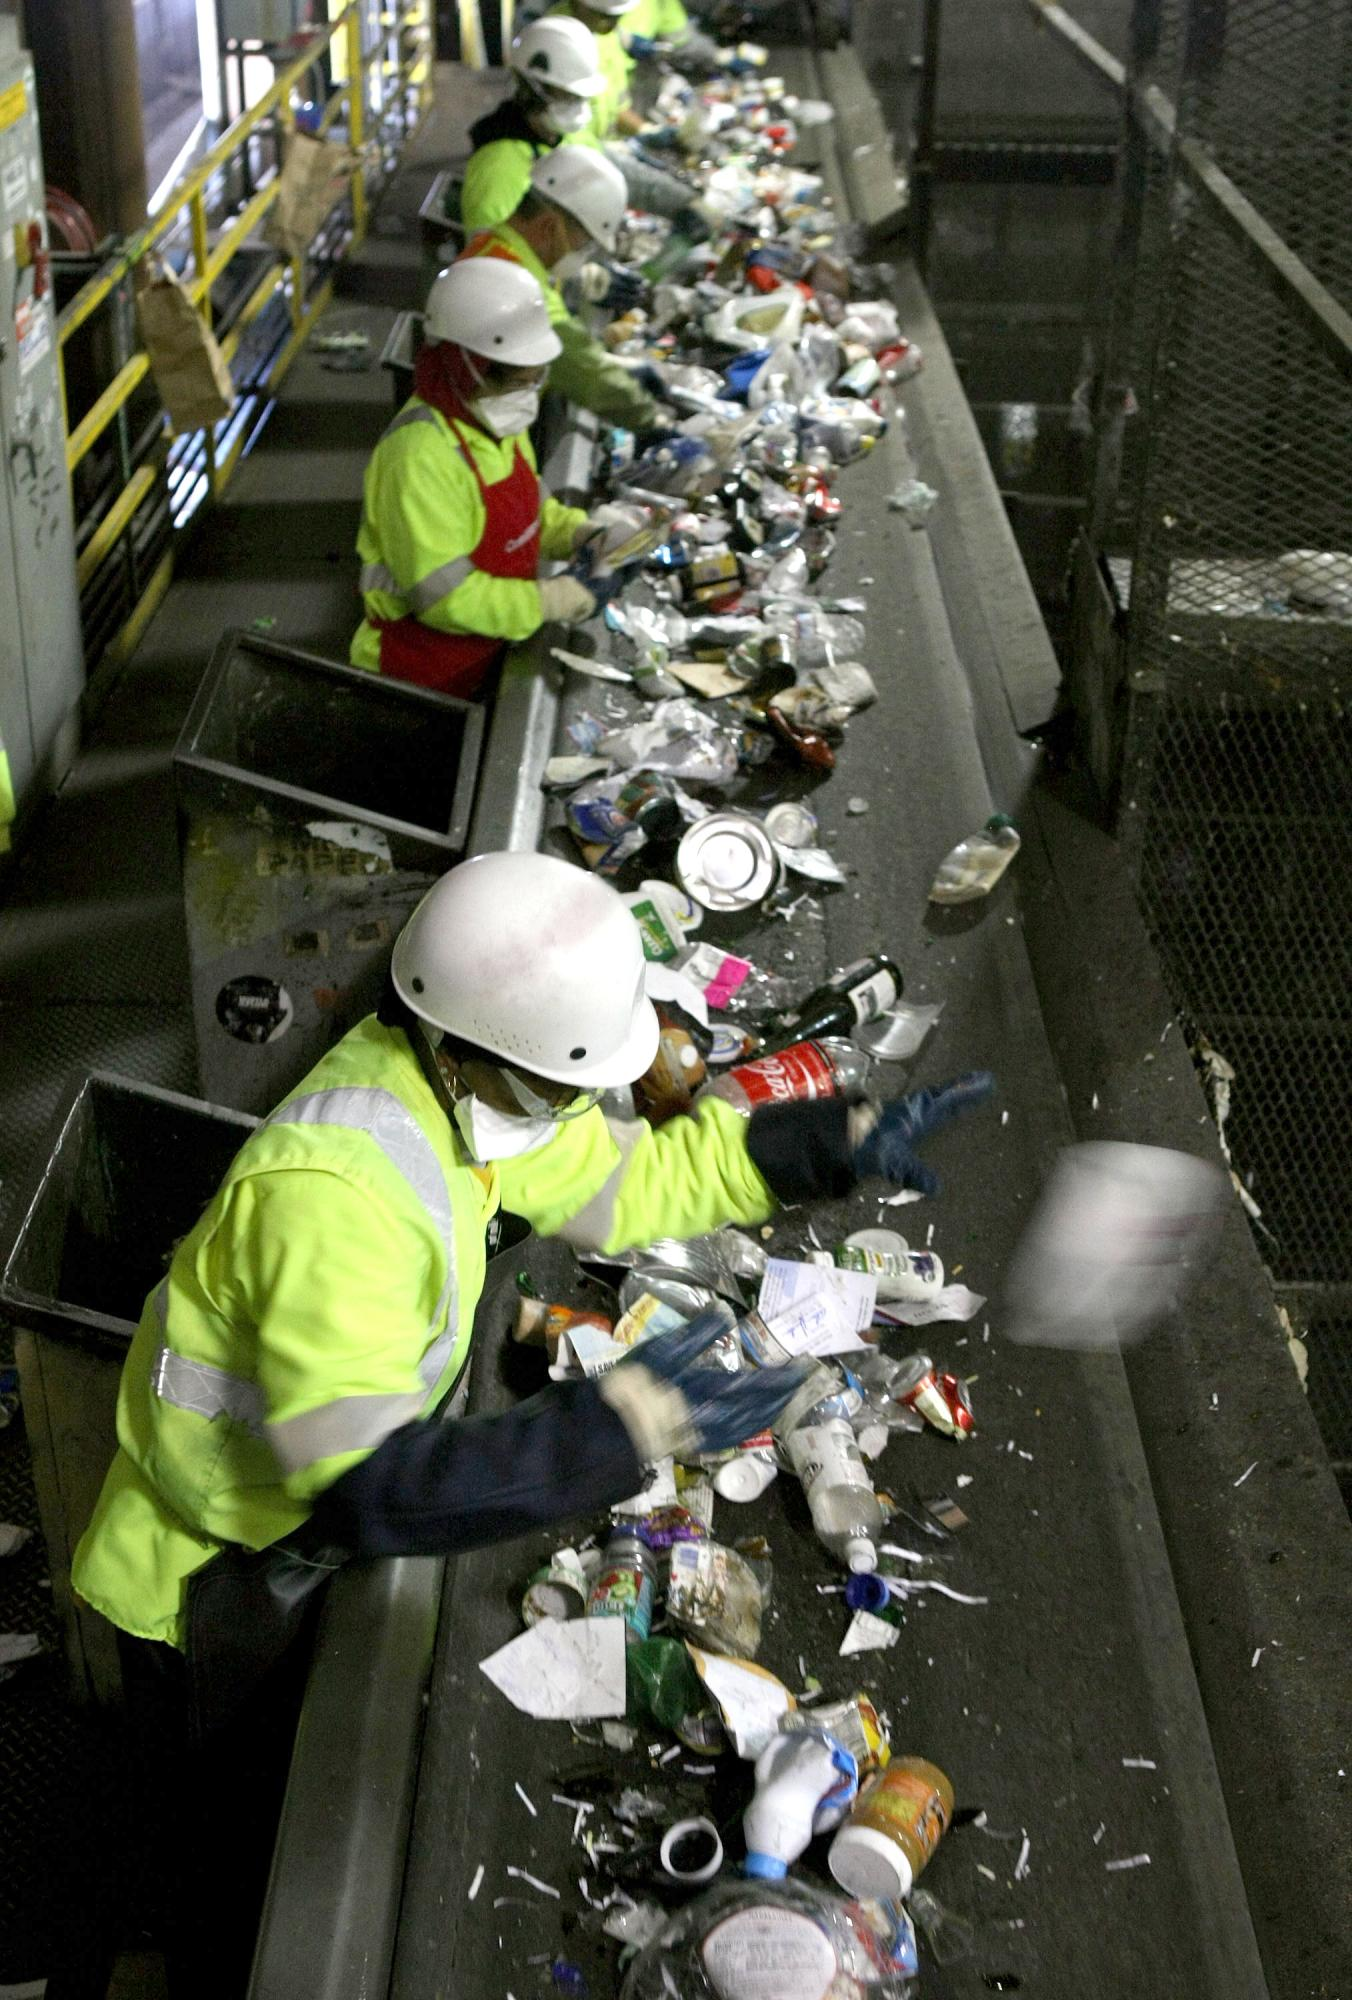 Recycling in cities